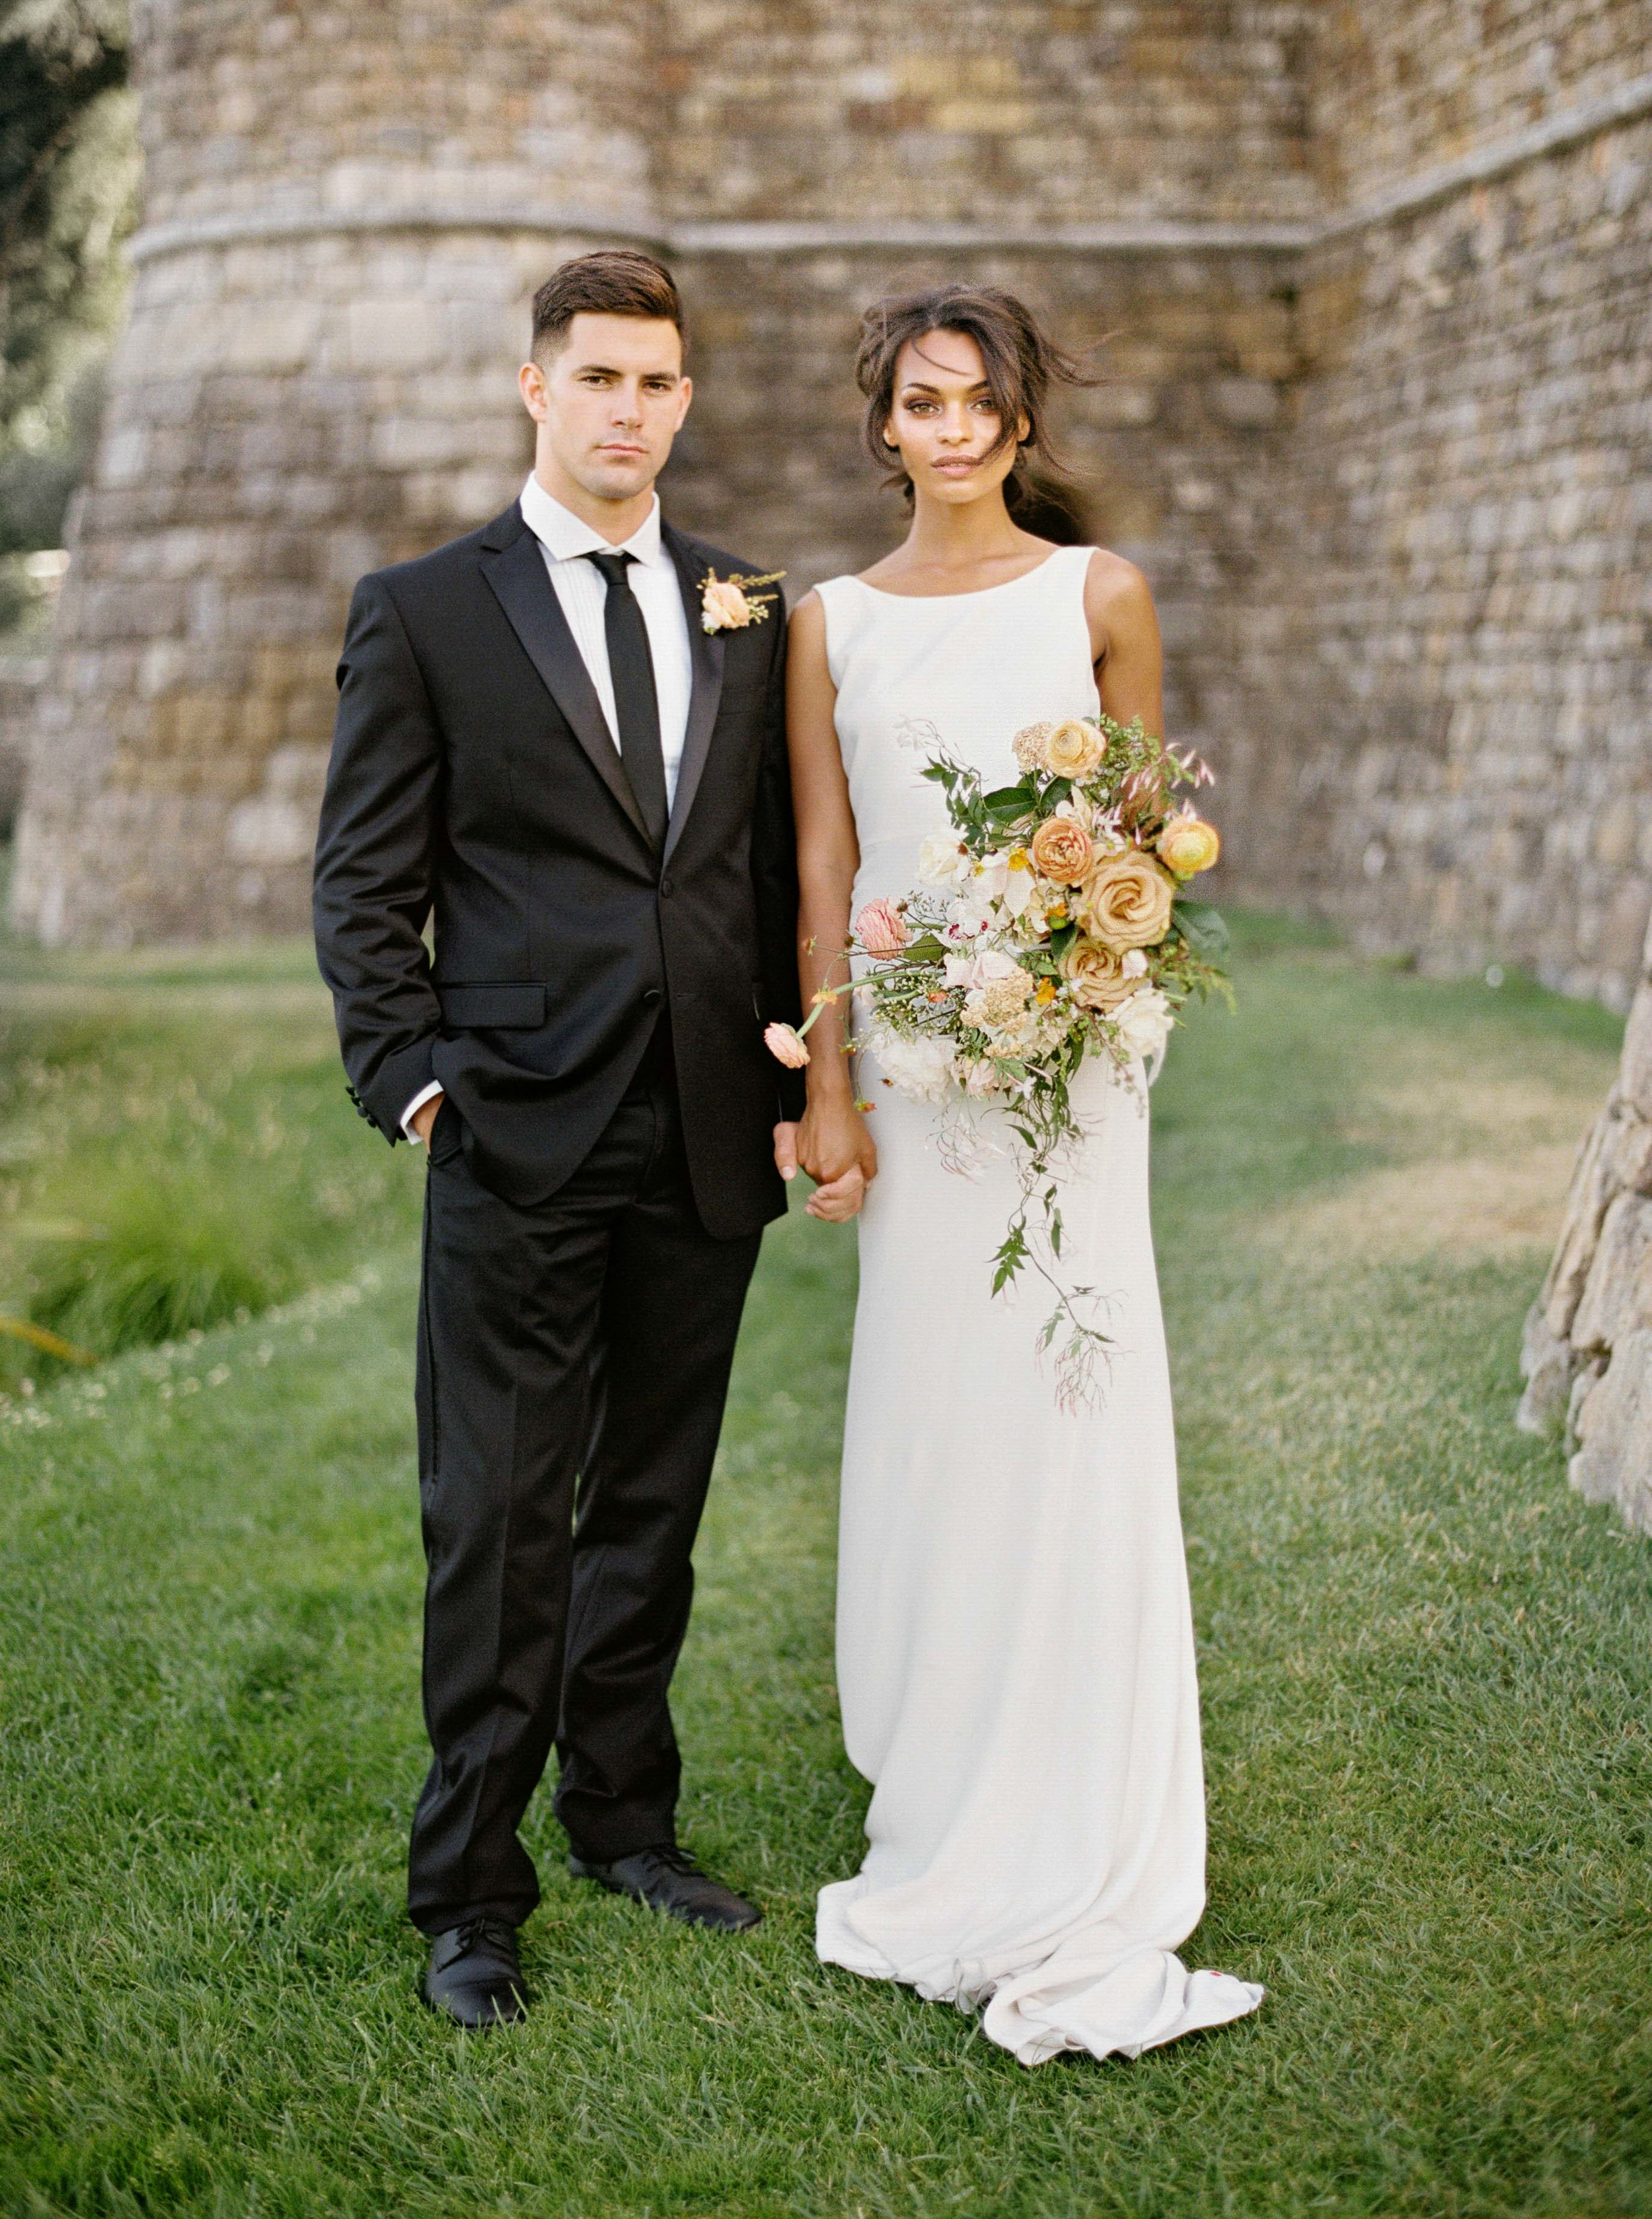 061napa_wedding_photographer_and_videographer_destination_and_elopement_photography.jpg